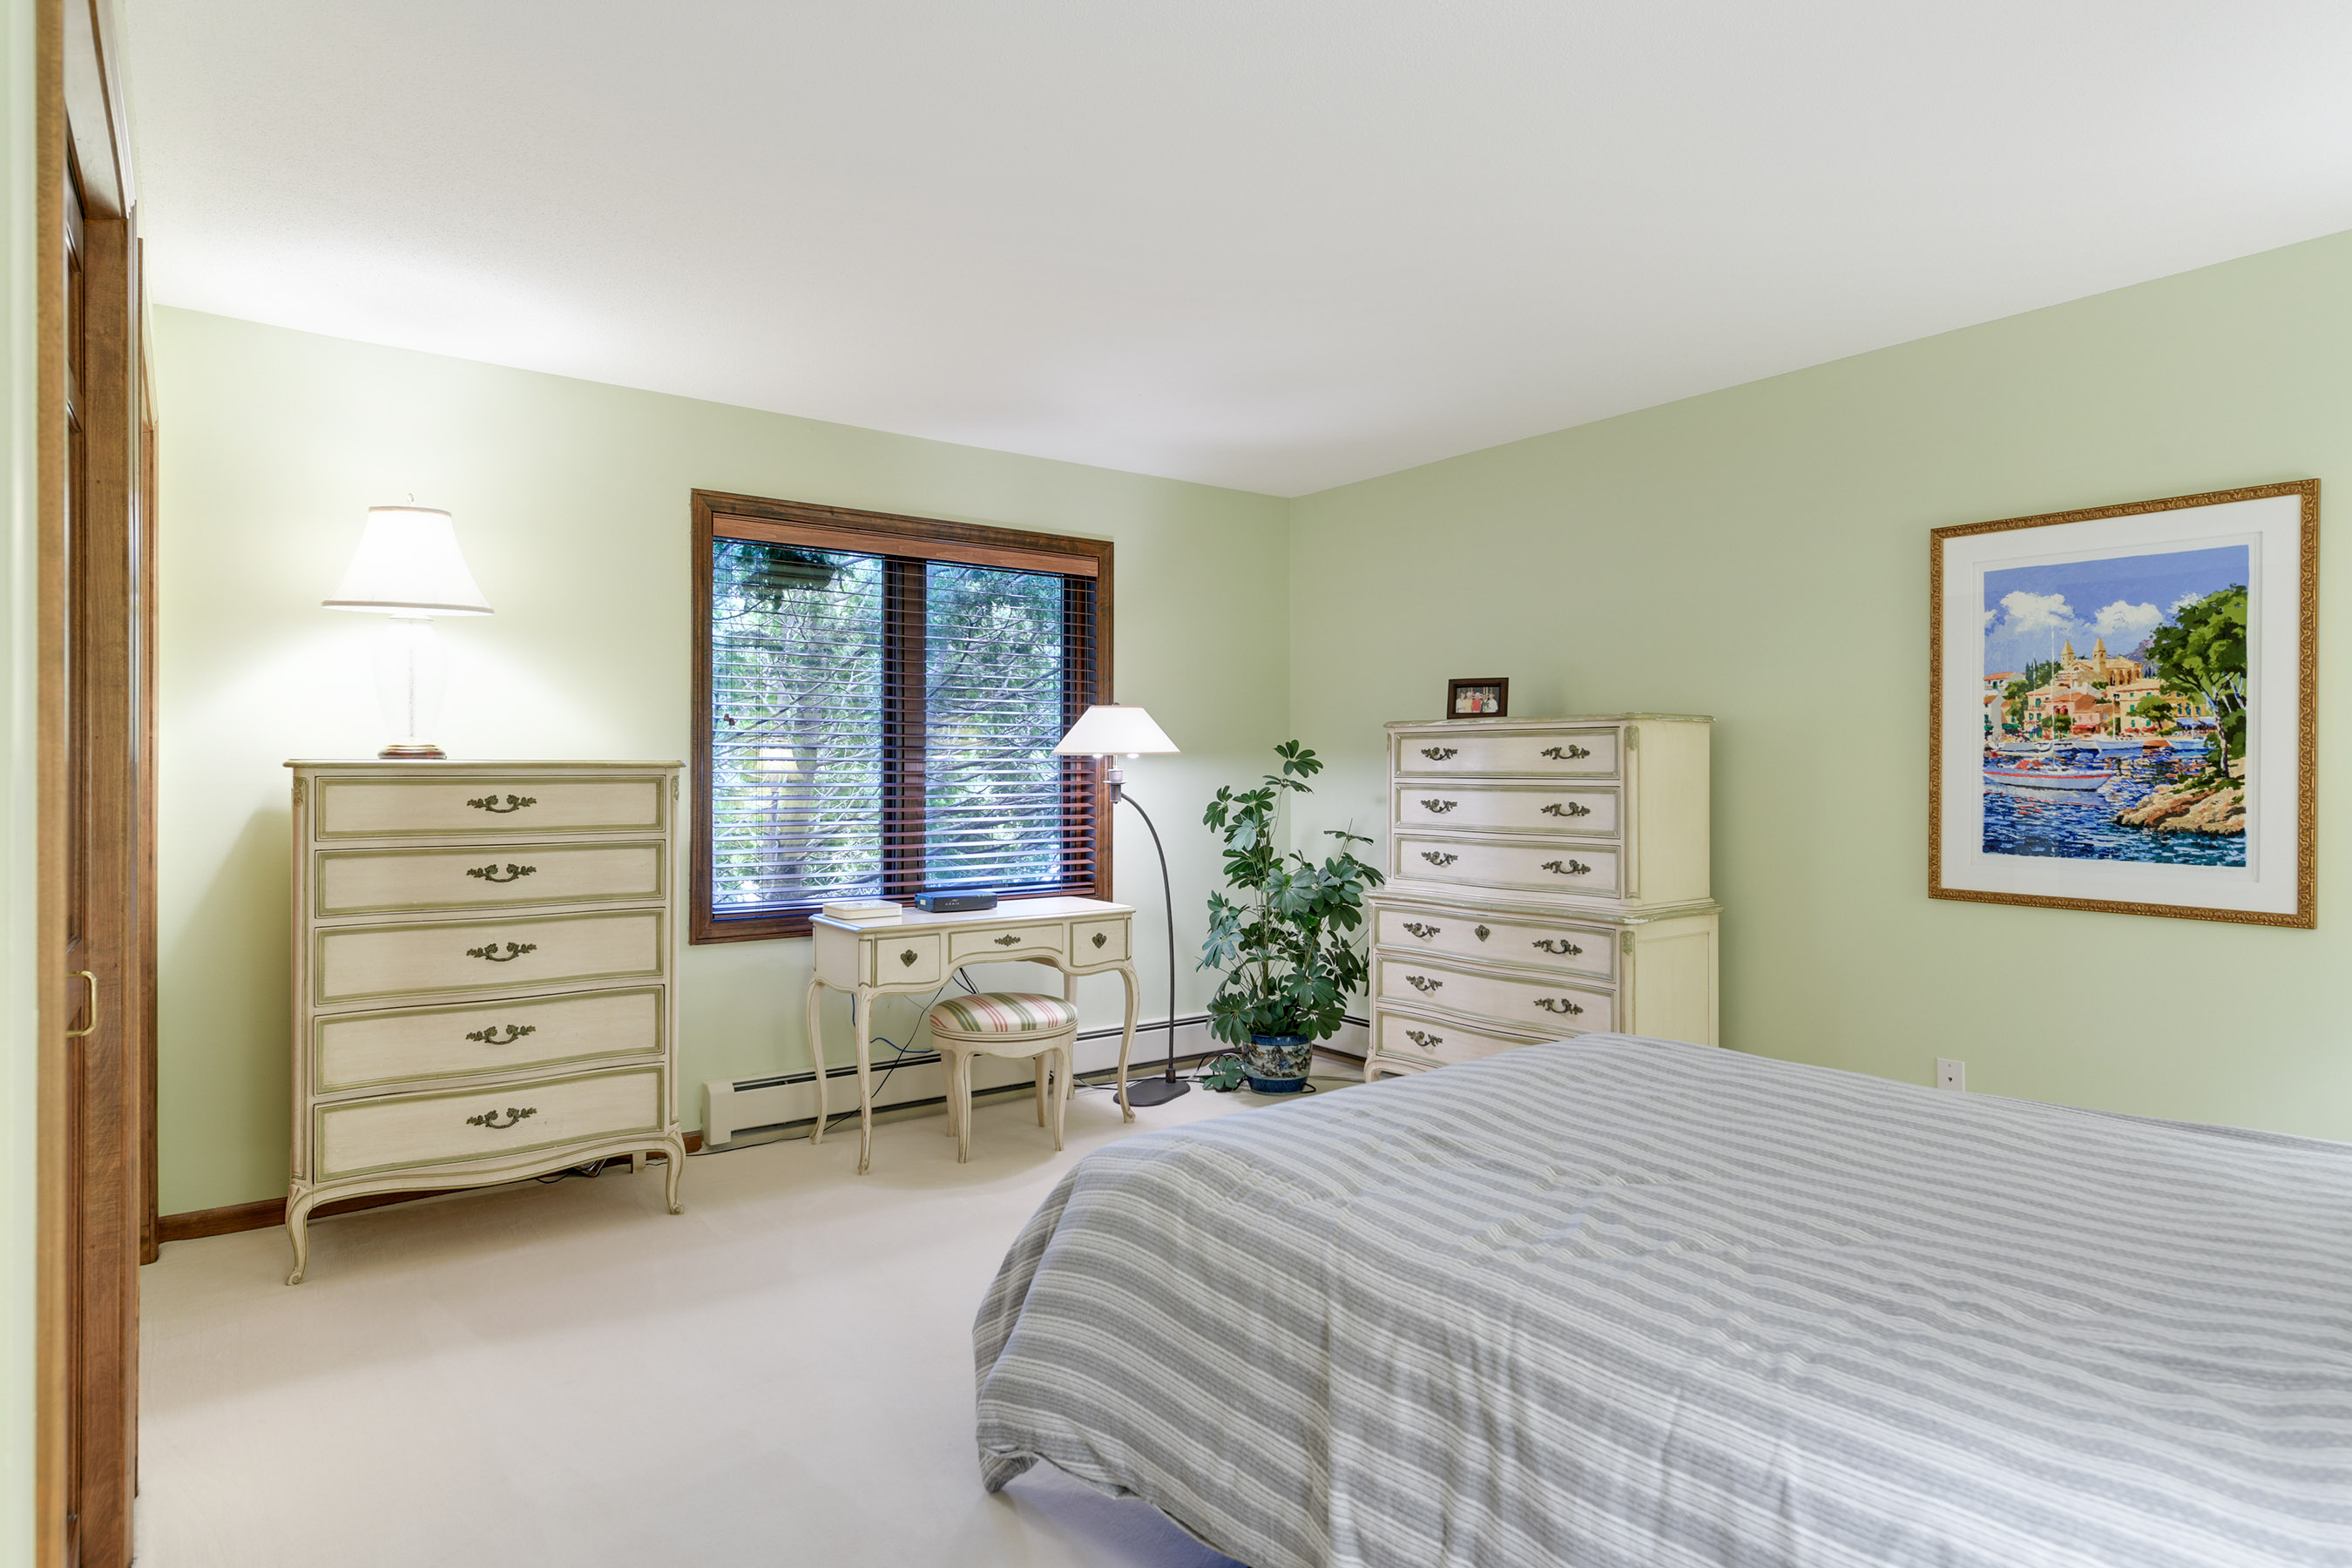 Nice size guest bedroom with 2 closets